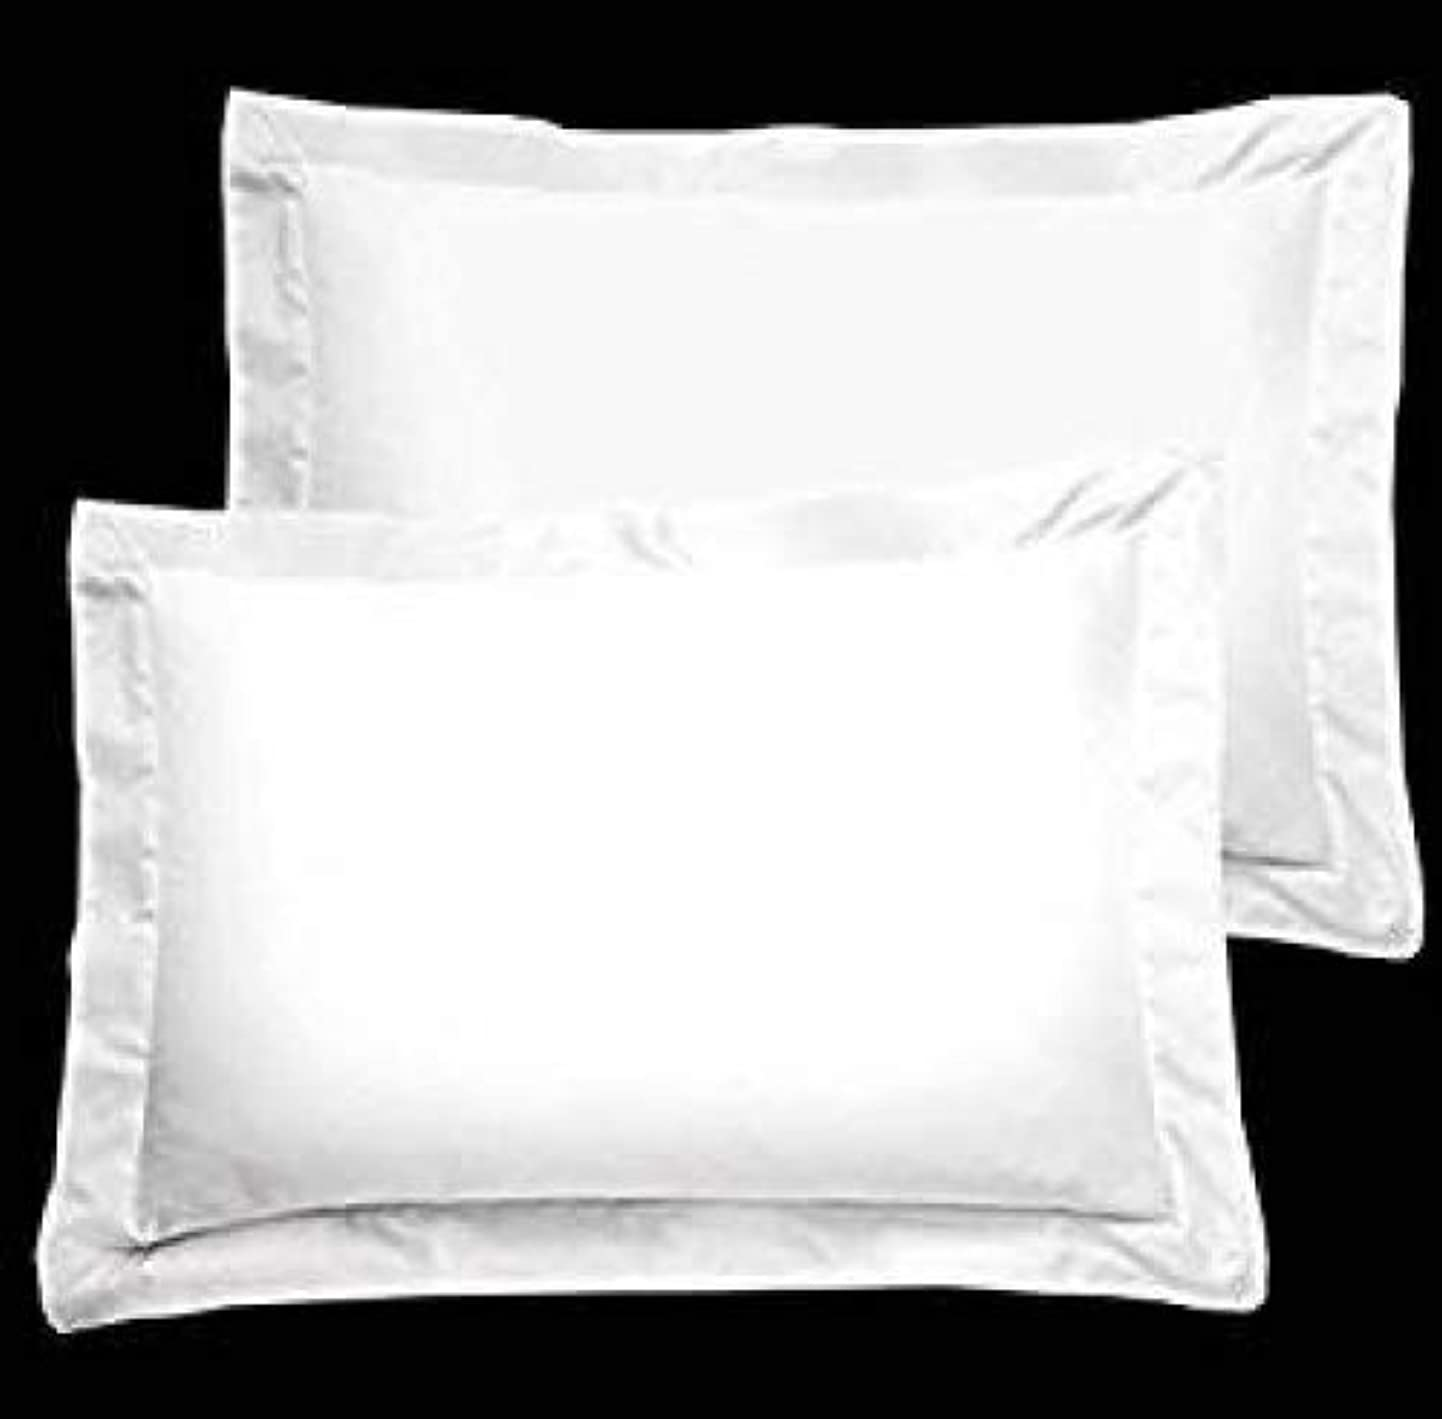 Bedify Collection American Size Set of 2pcs Pillow Case 400 Thread Count Queen/King 20x30